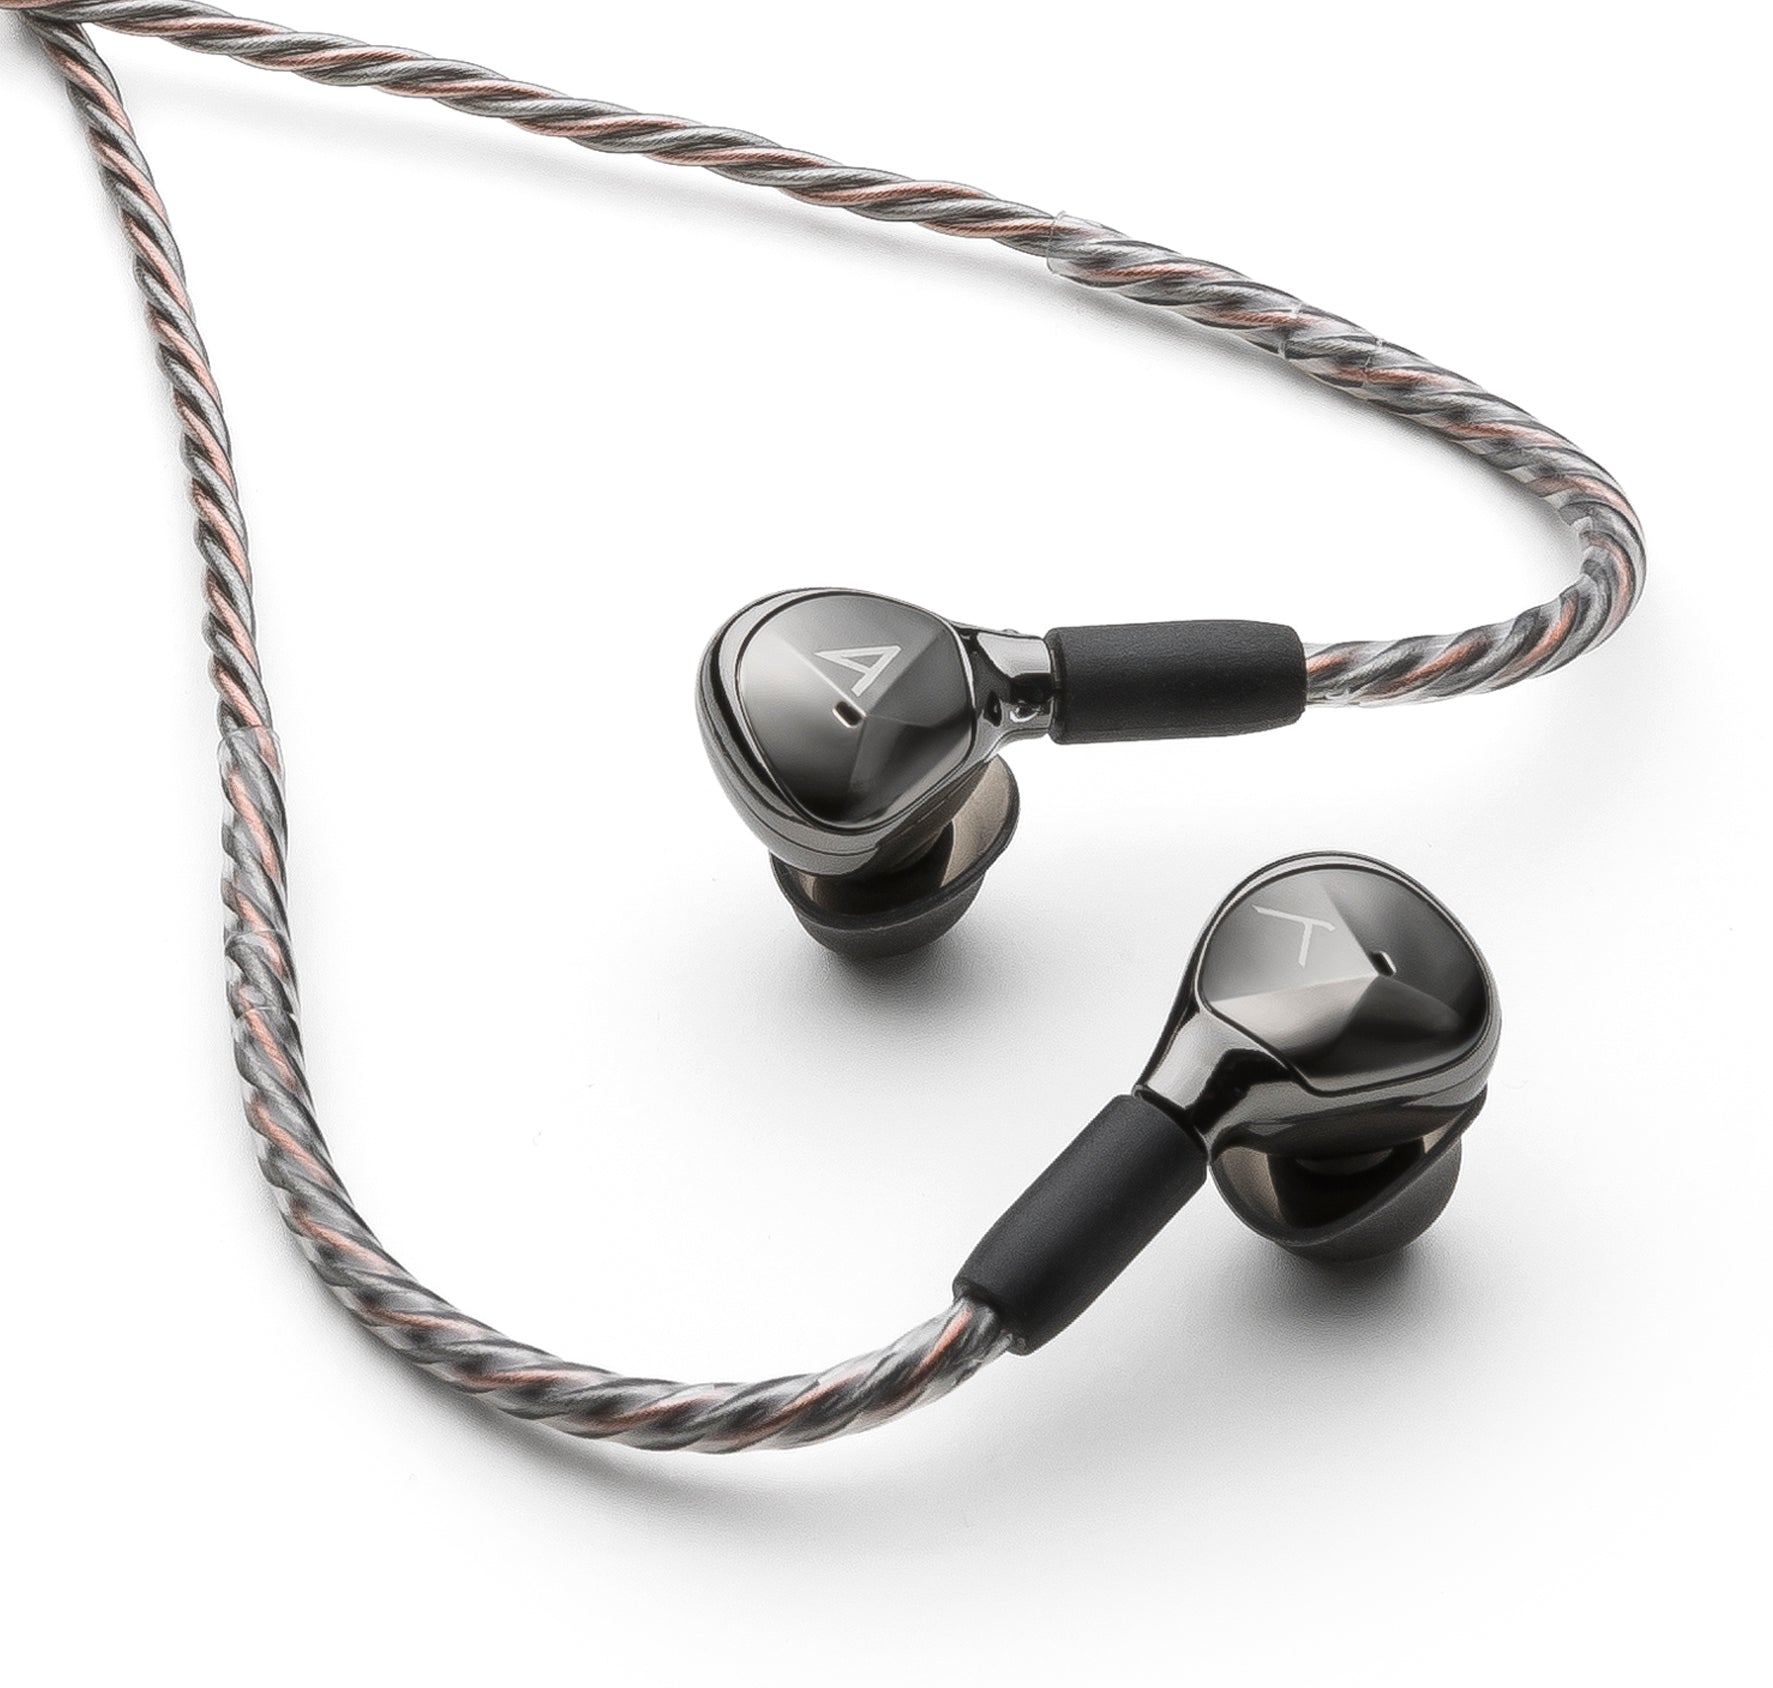 Astell&Kern AK T9ie In-Ear Monitor Headphones with Tesla Technology | Available on Headphones.com